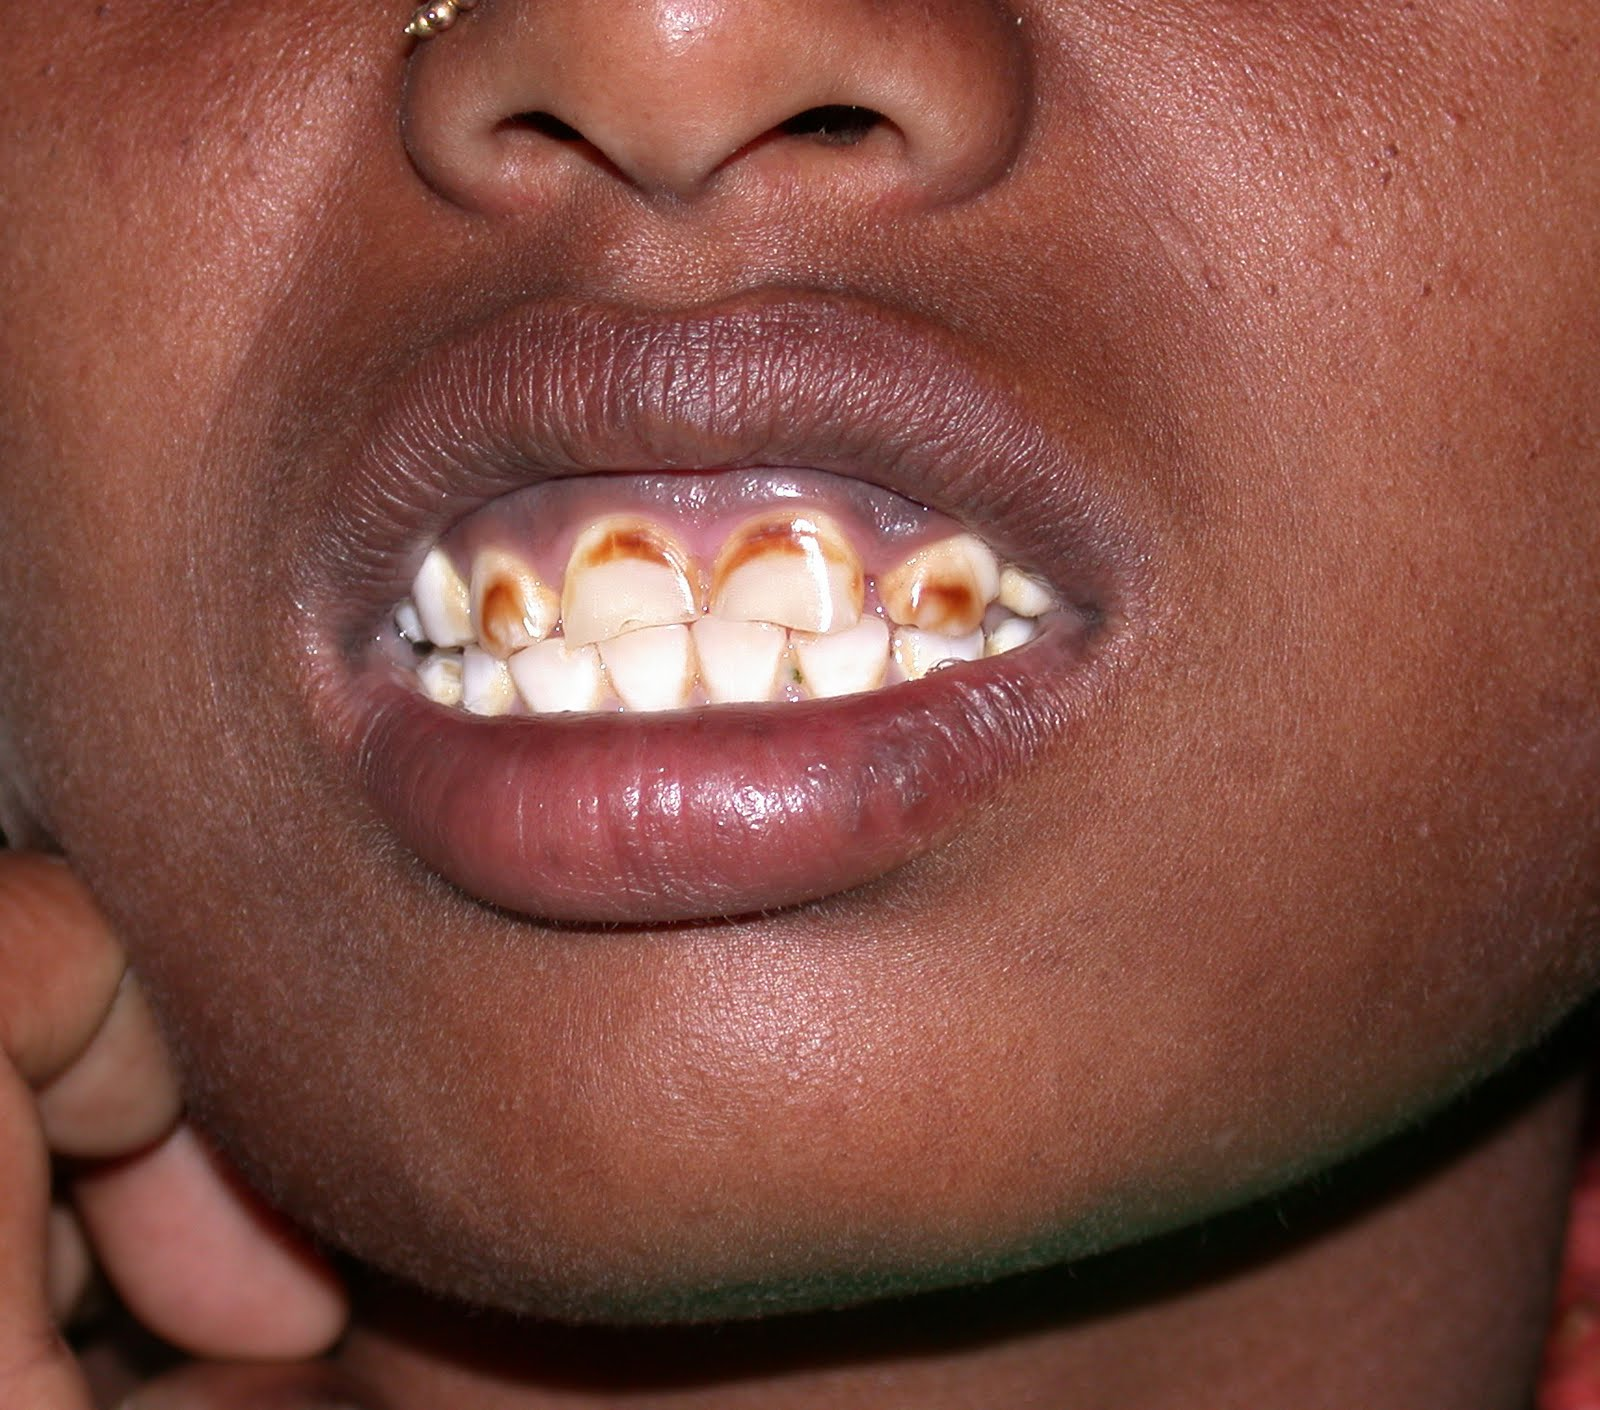 Brown Spots on Baby Teeth http://doctorsgates.blogspot.com/2010/09/fluorosis-dental-staining.html